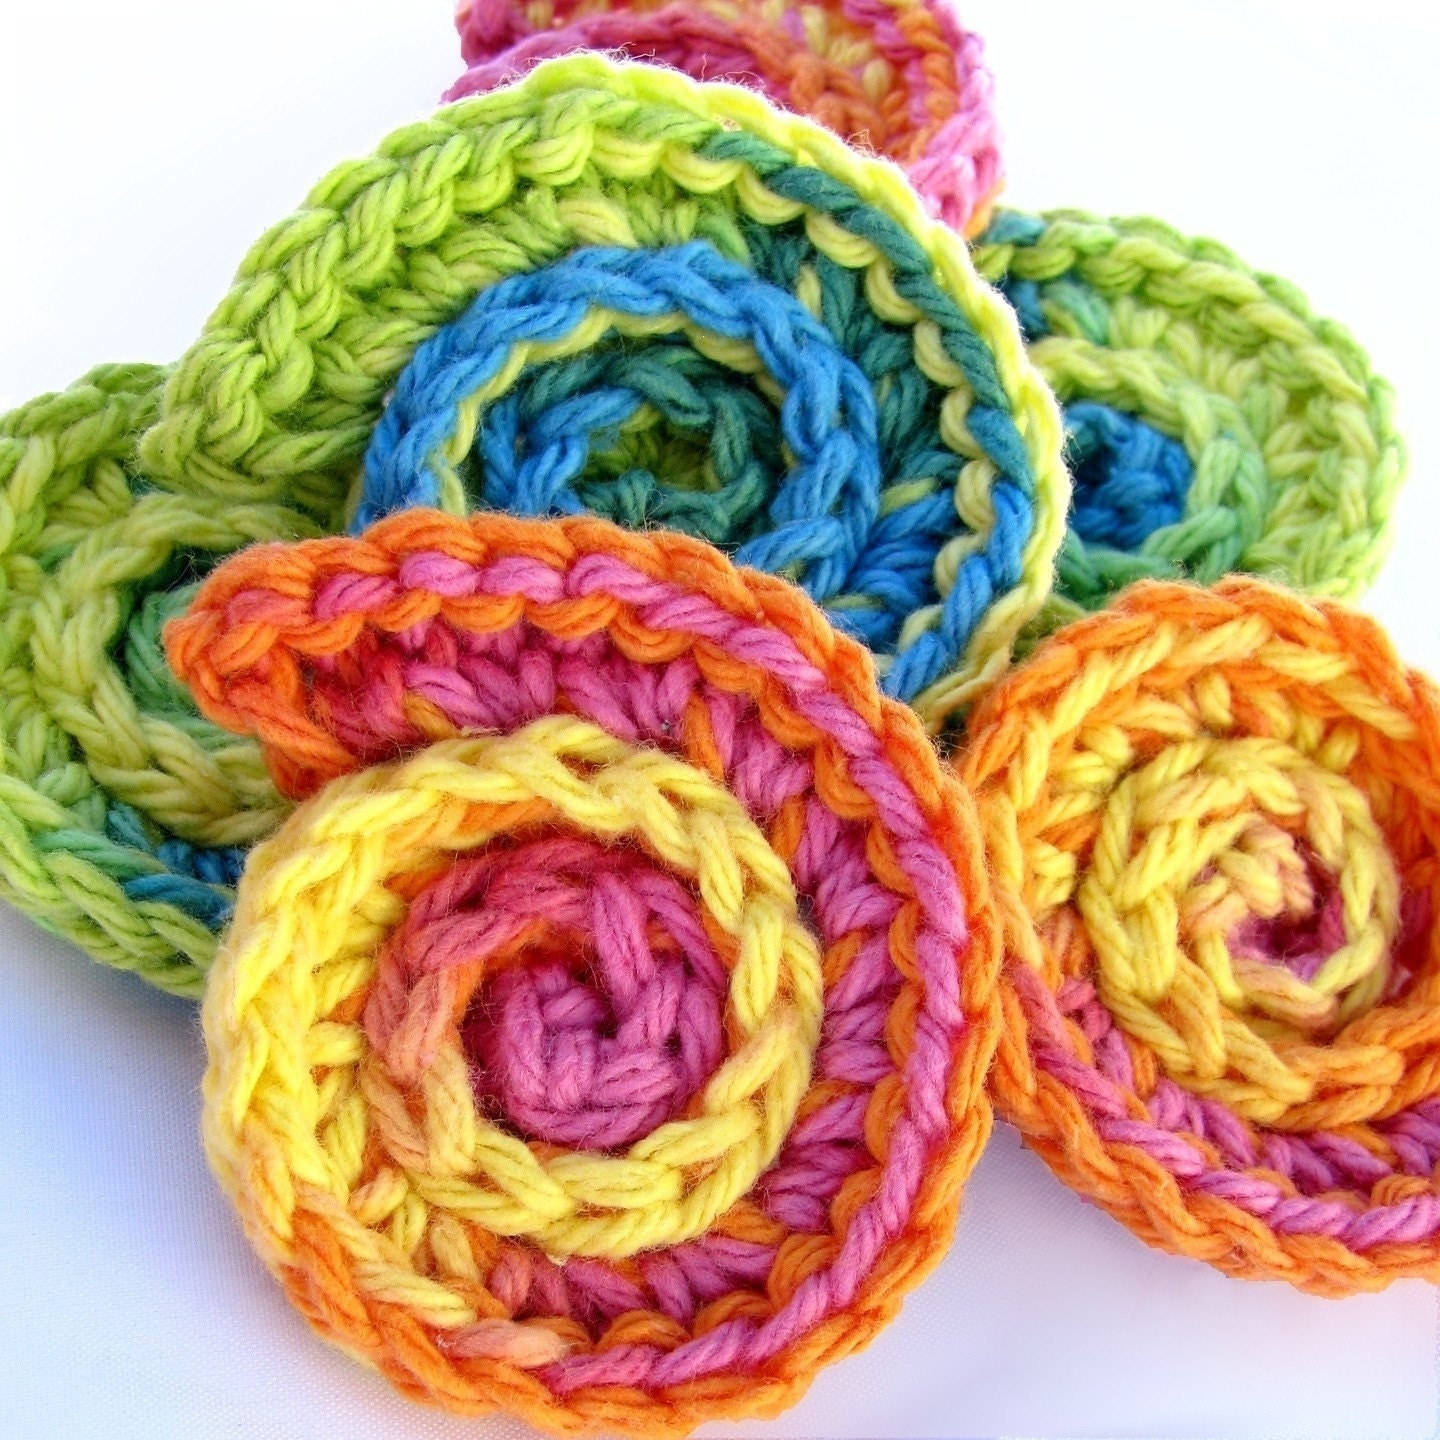 Crochet Patterns Scrubbies : CROCHET SCRUBBIE PATTERNS ? Free Patterns